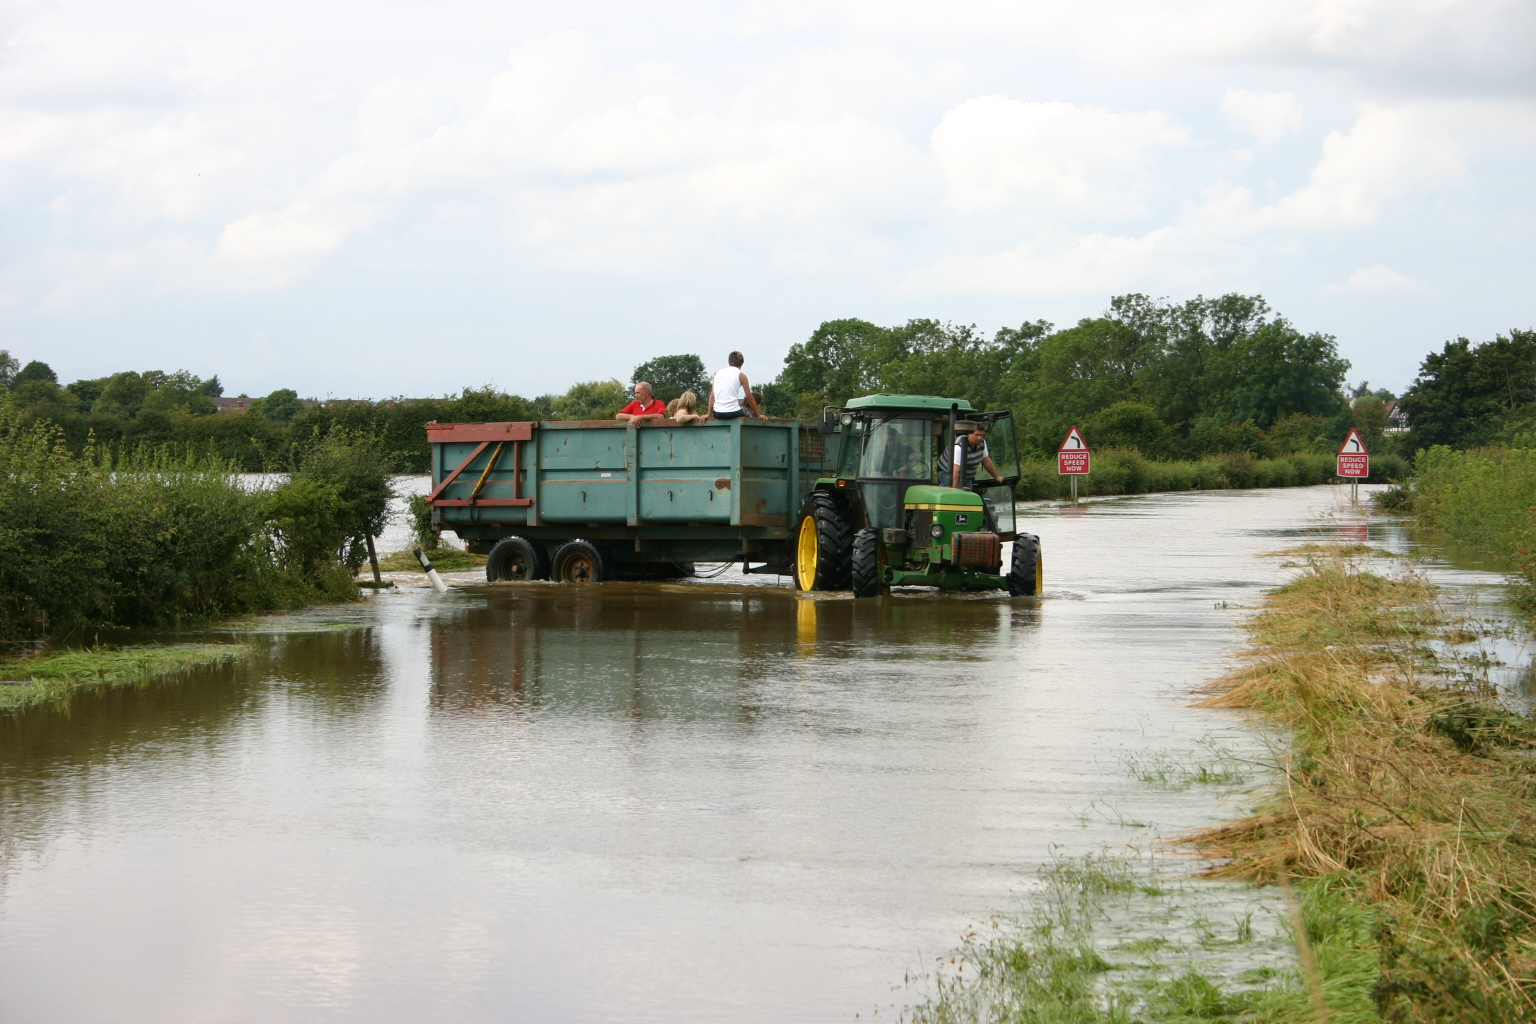 Tractor in moving from a flooded field to a flooded road